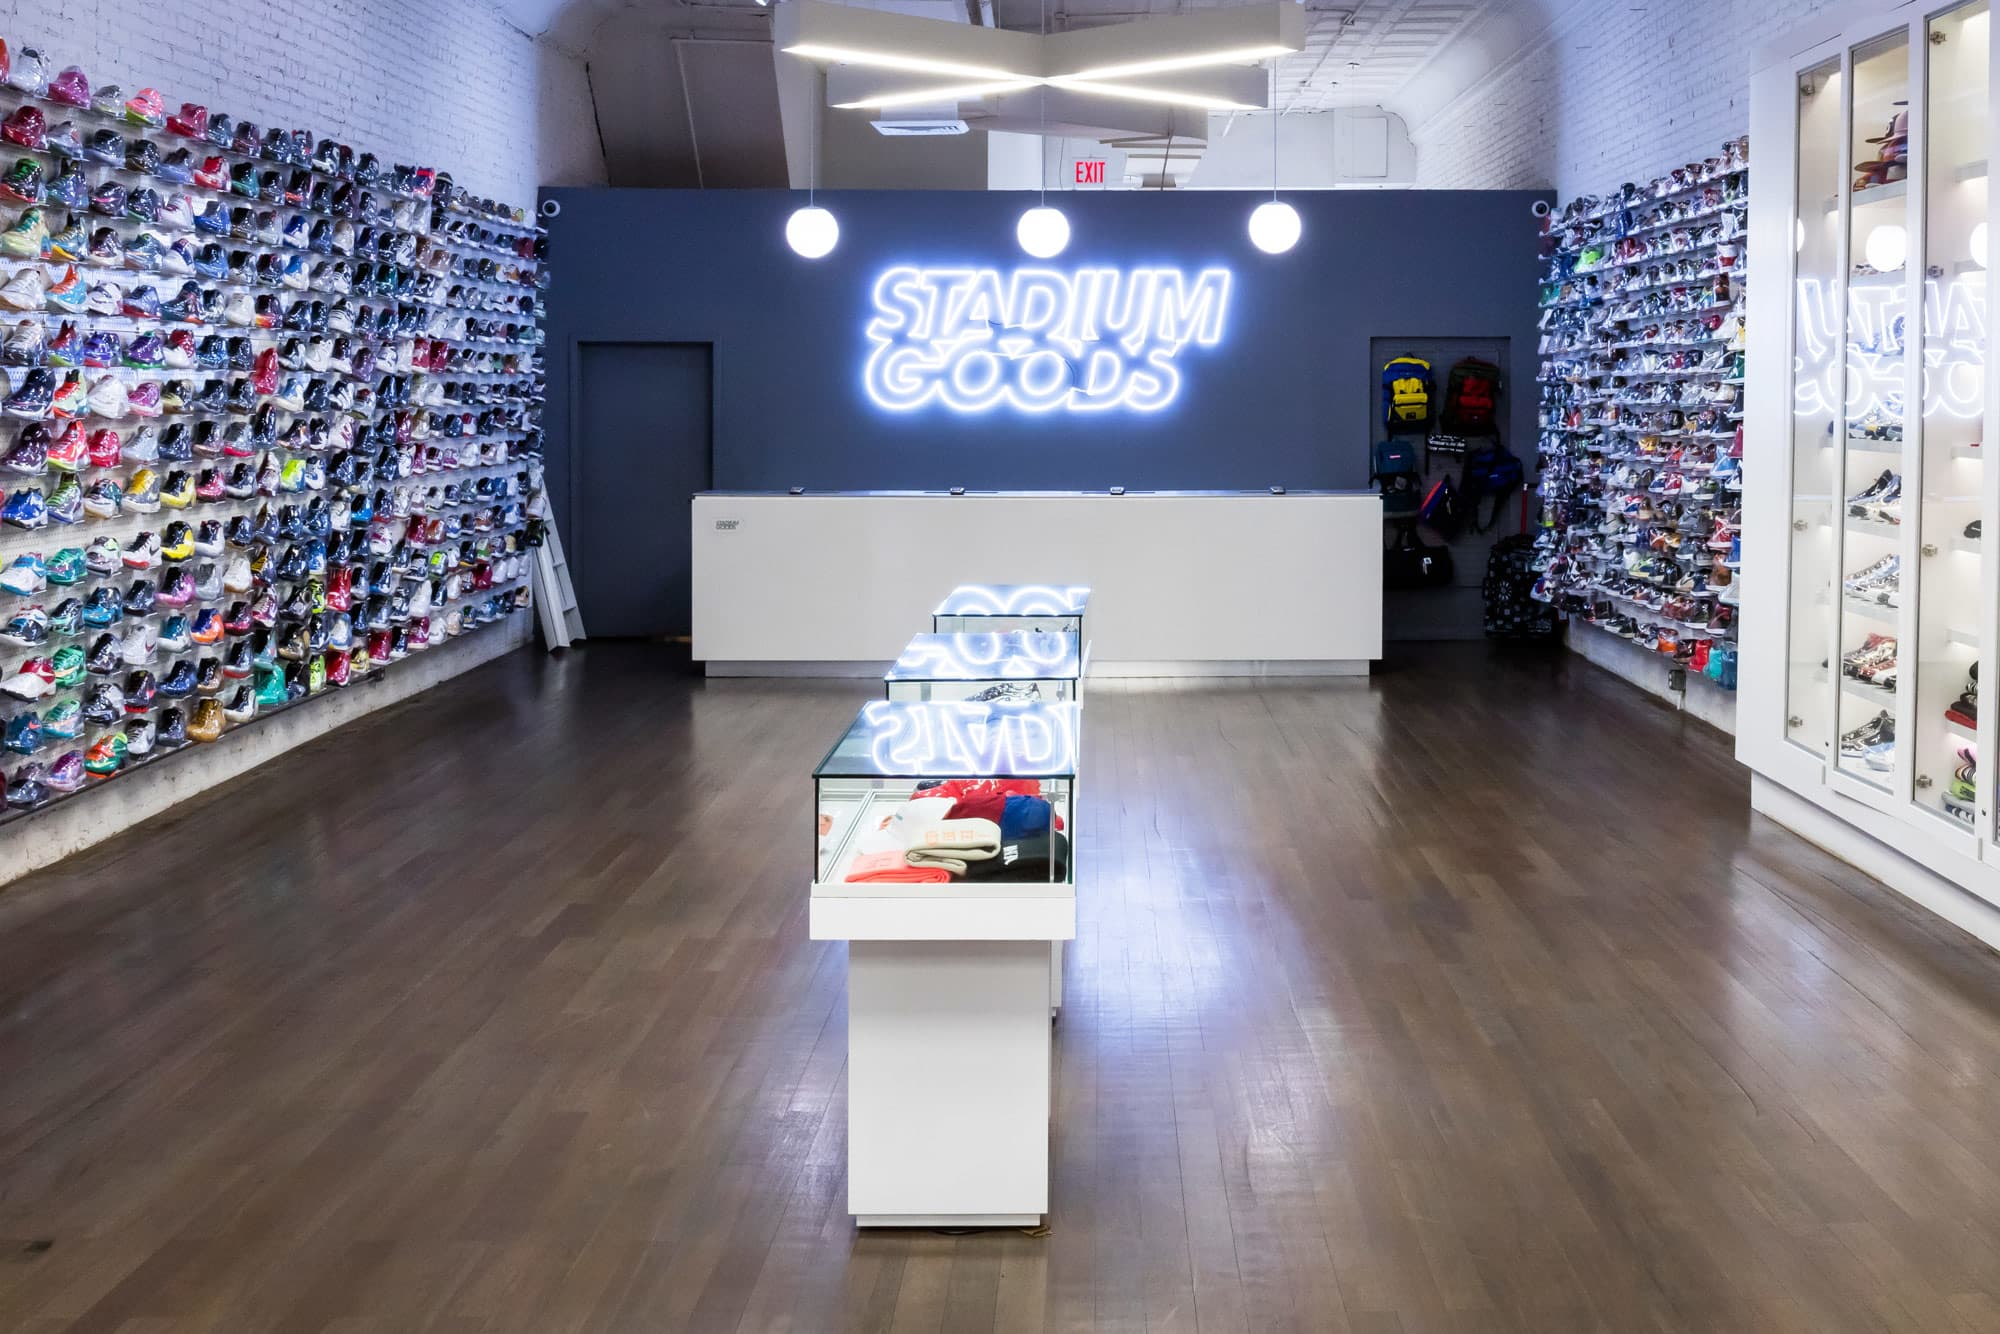 c2b7becc1ba35 Nordstrom to partner with sneaker marketplace Stadium Goods at its  stand-alone men s store